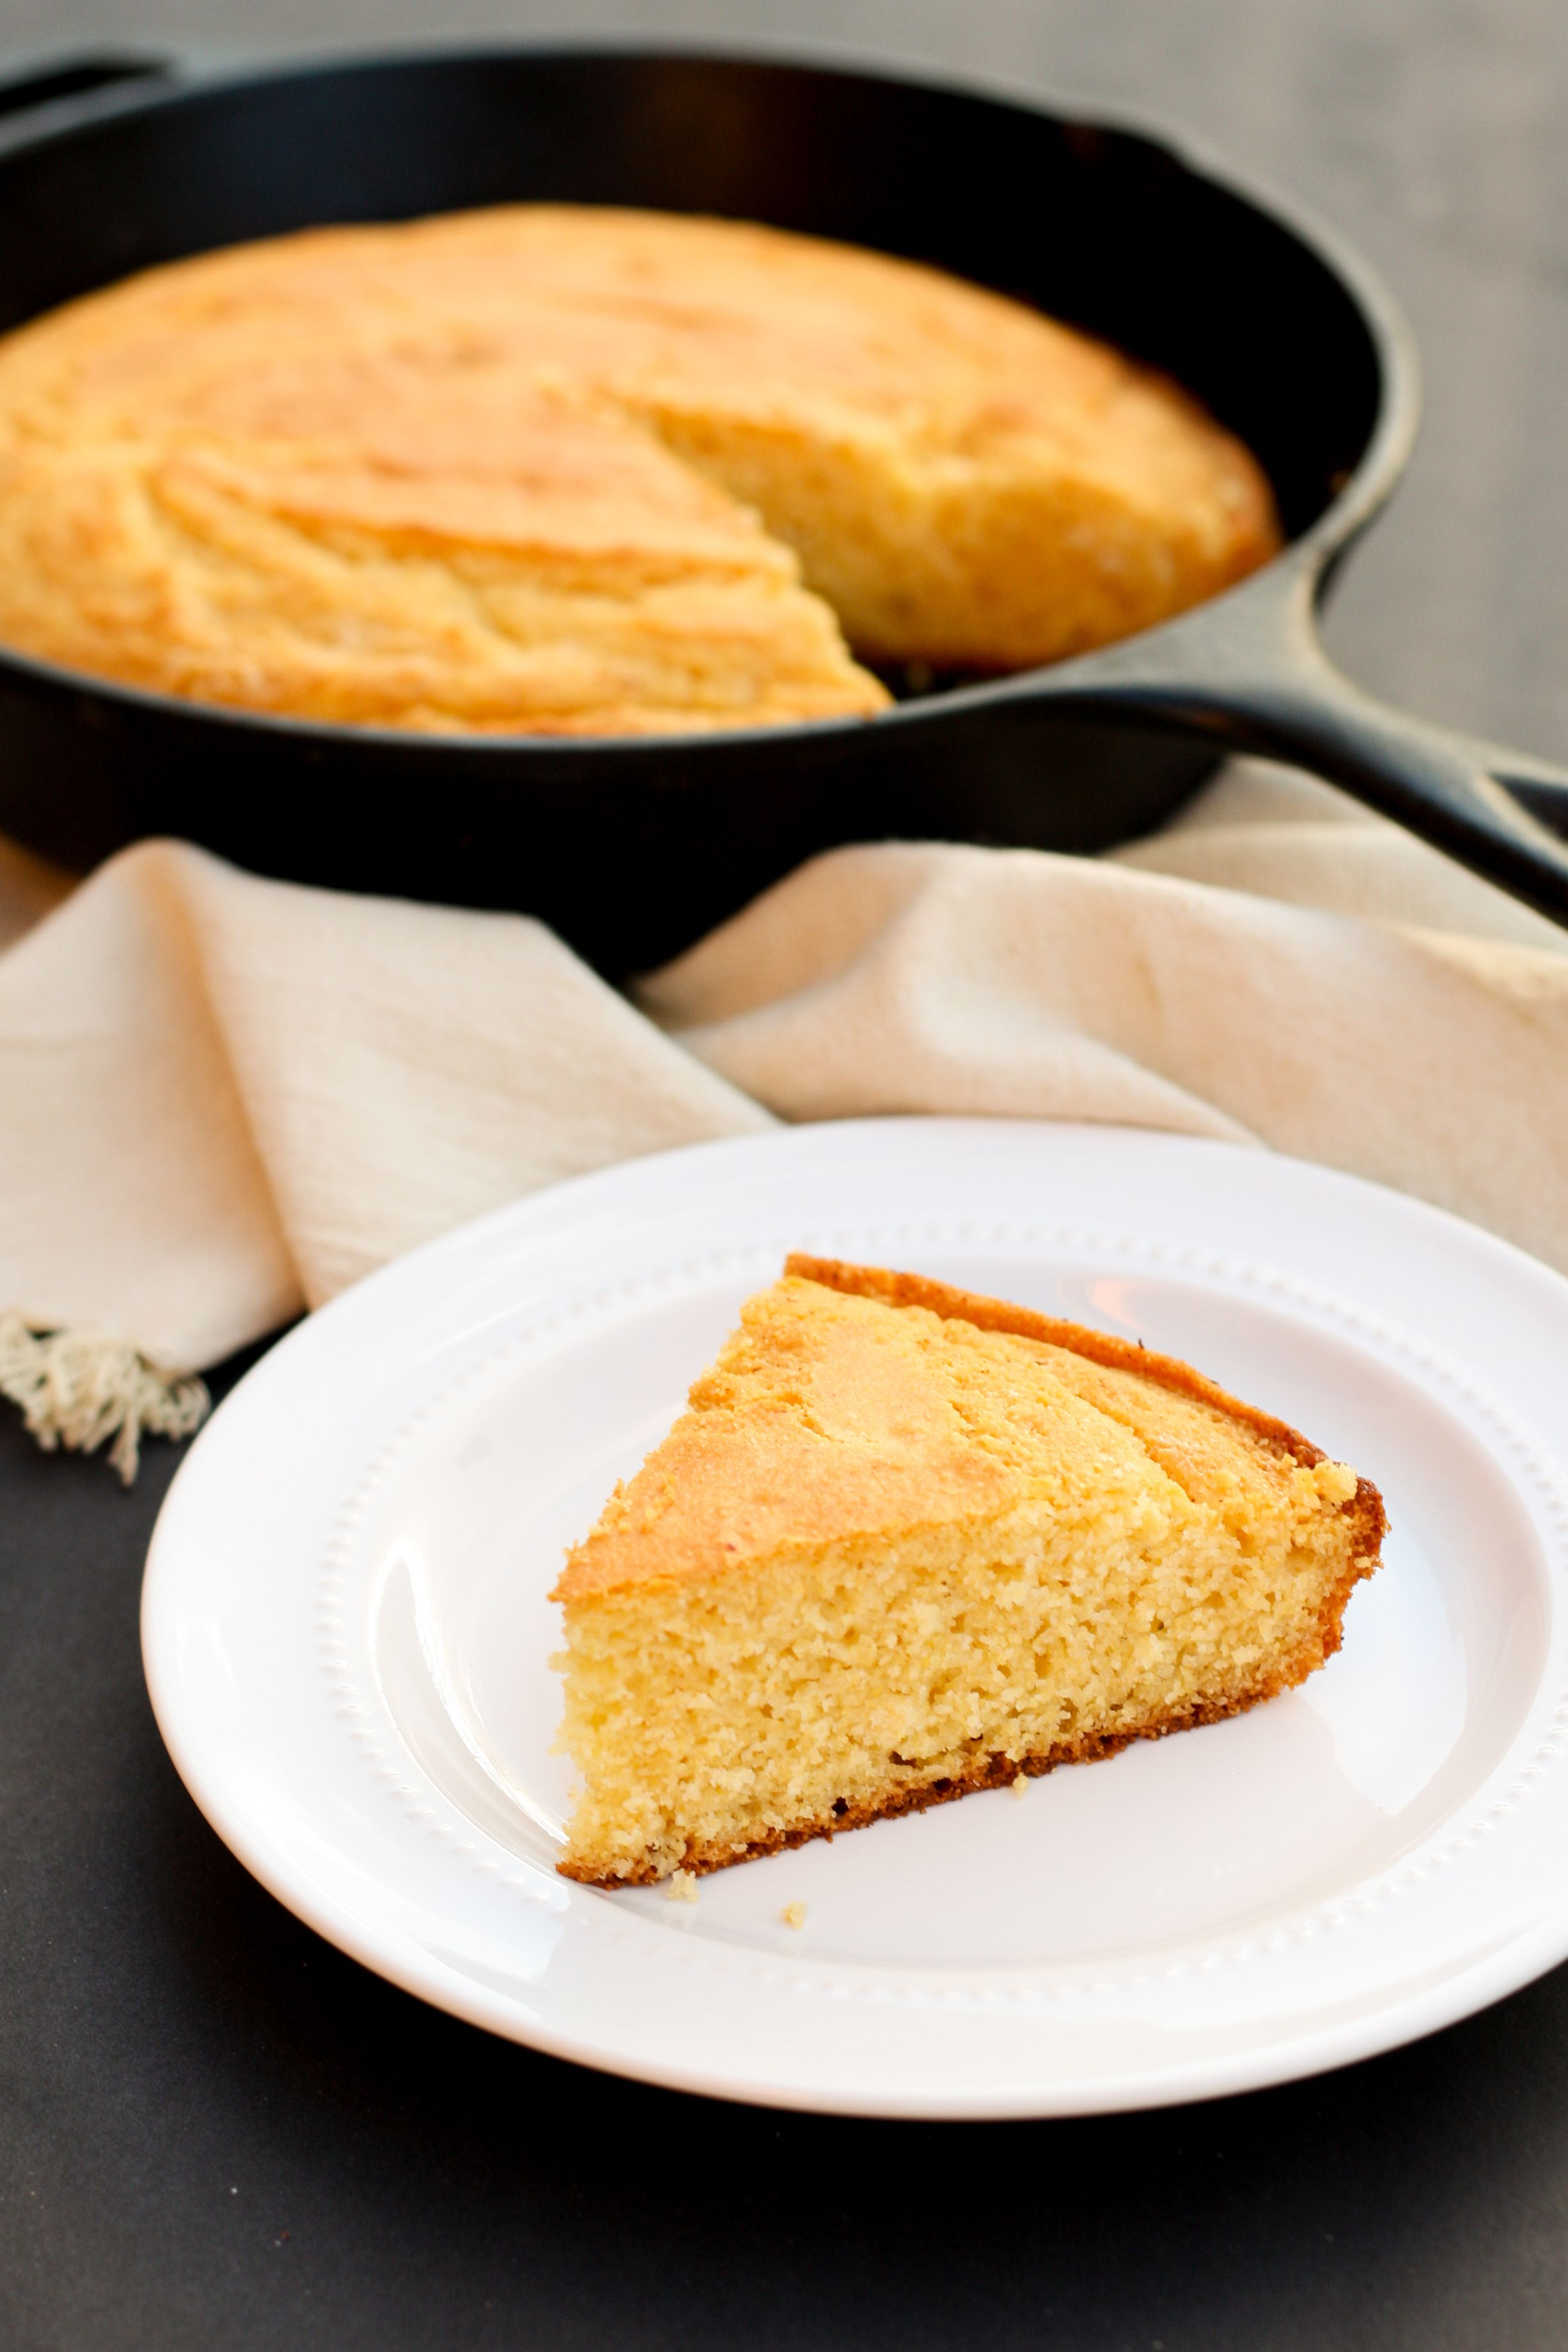 Gluten Free Cornbread Recipe With Honey Recipe Gluten Free Cornbread Recipe Gluten Free Cornbread Honey Cornbread